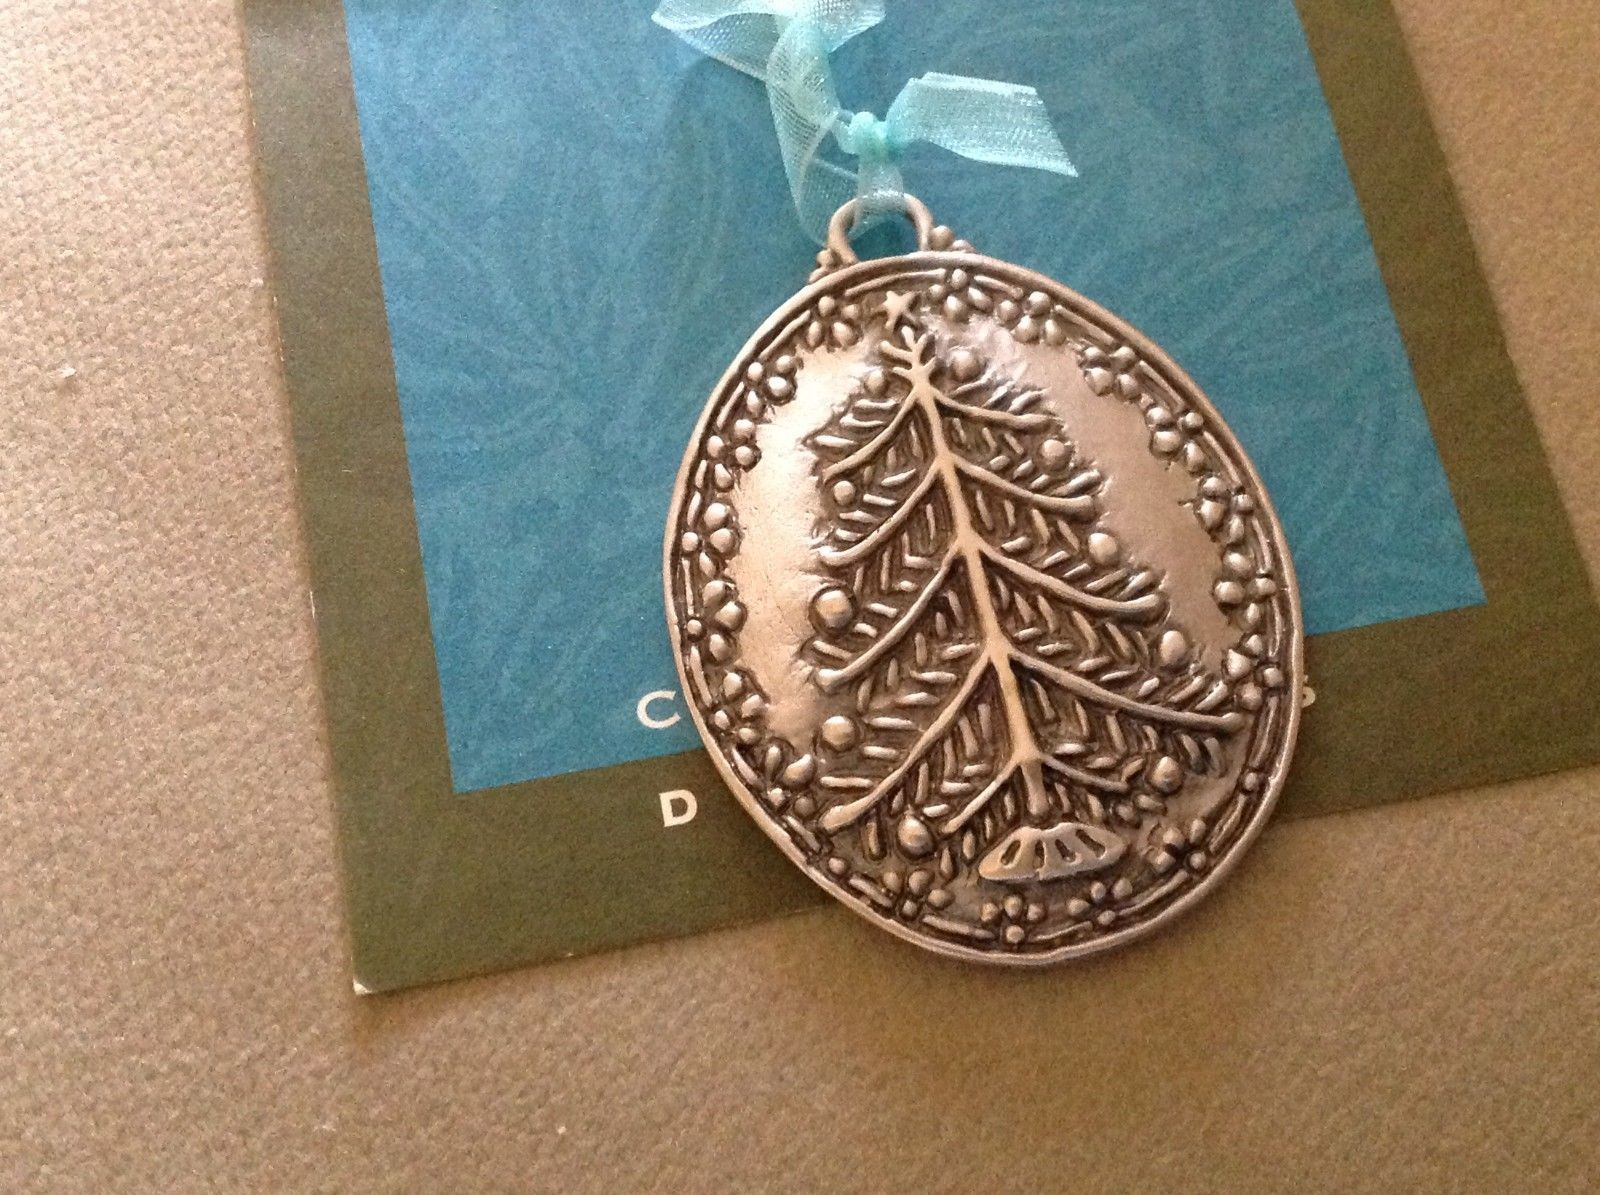 New small Pewter hand made Christmas tree hanging wall ornament made in USA